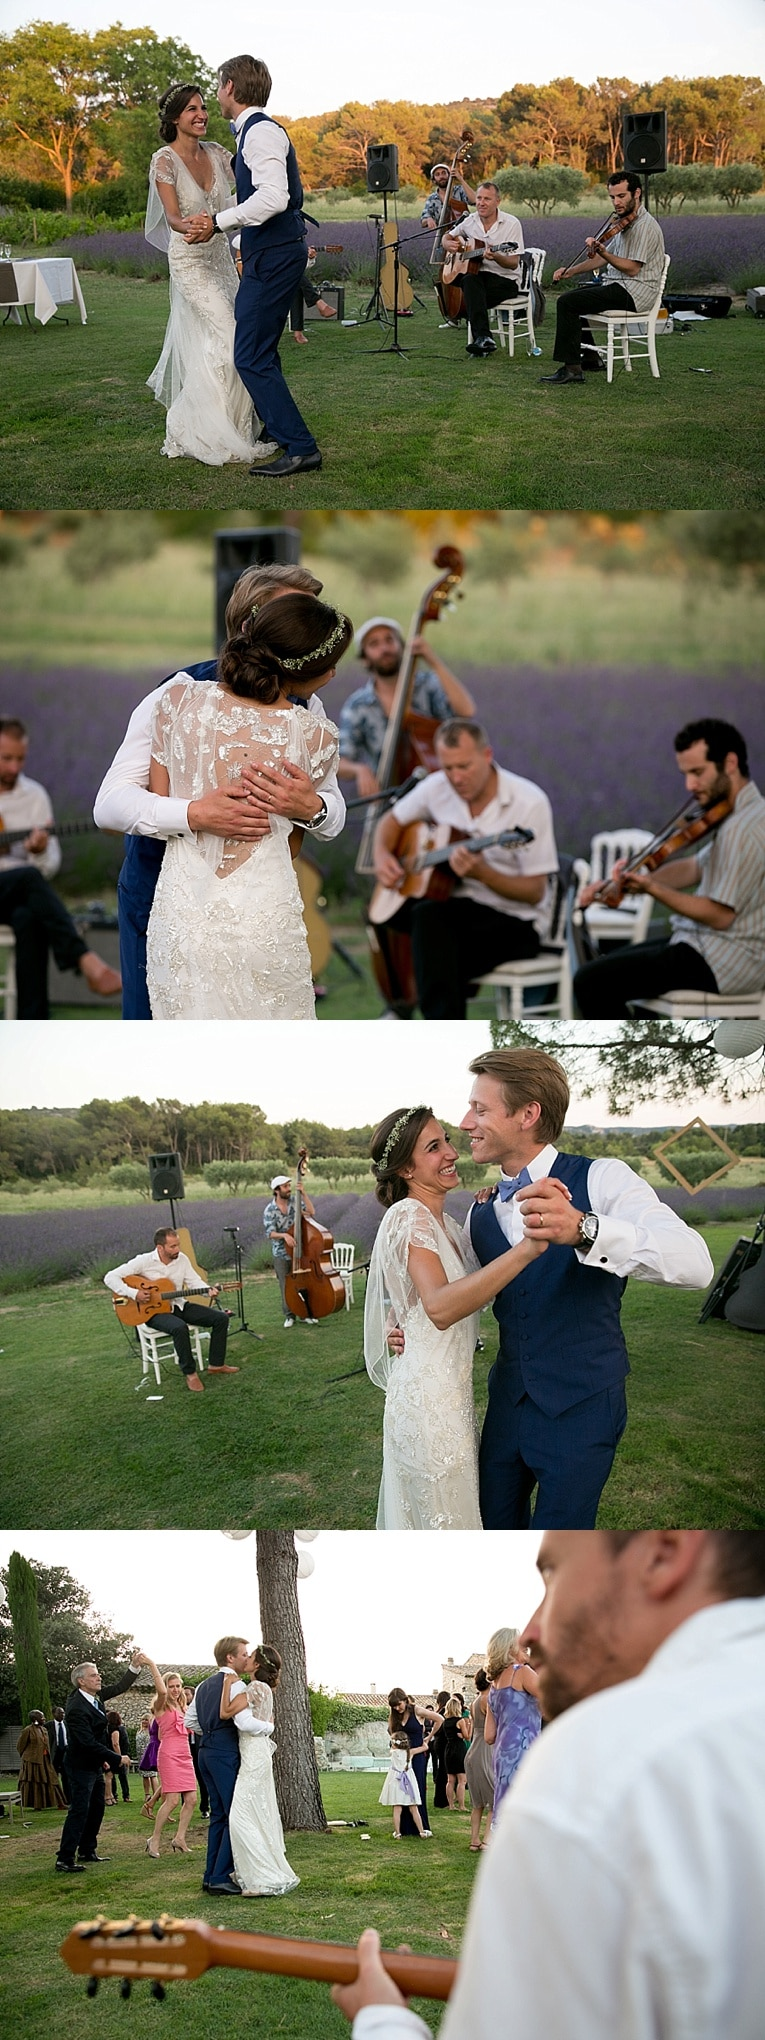 provence-wedding-photographer-15